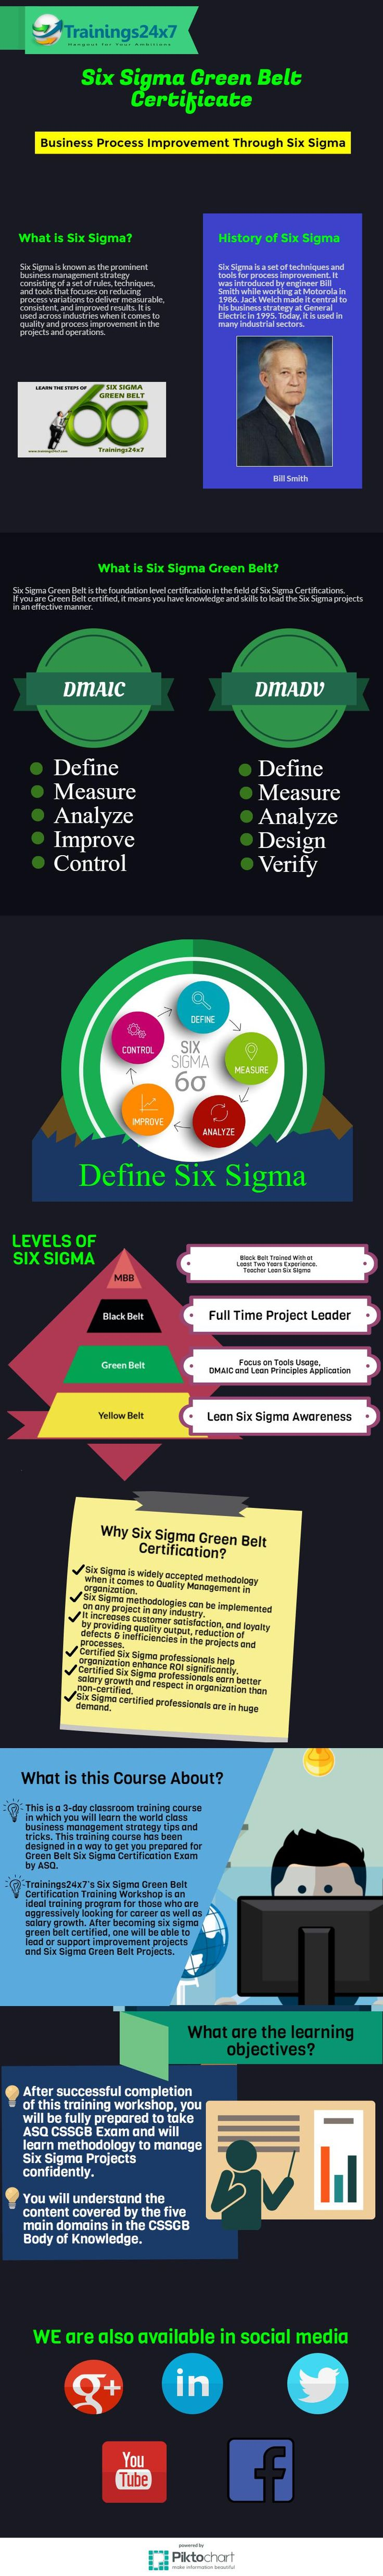 25 Best Infographics Pmp Six Sigma Digital Markrteing Images On